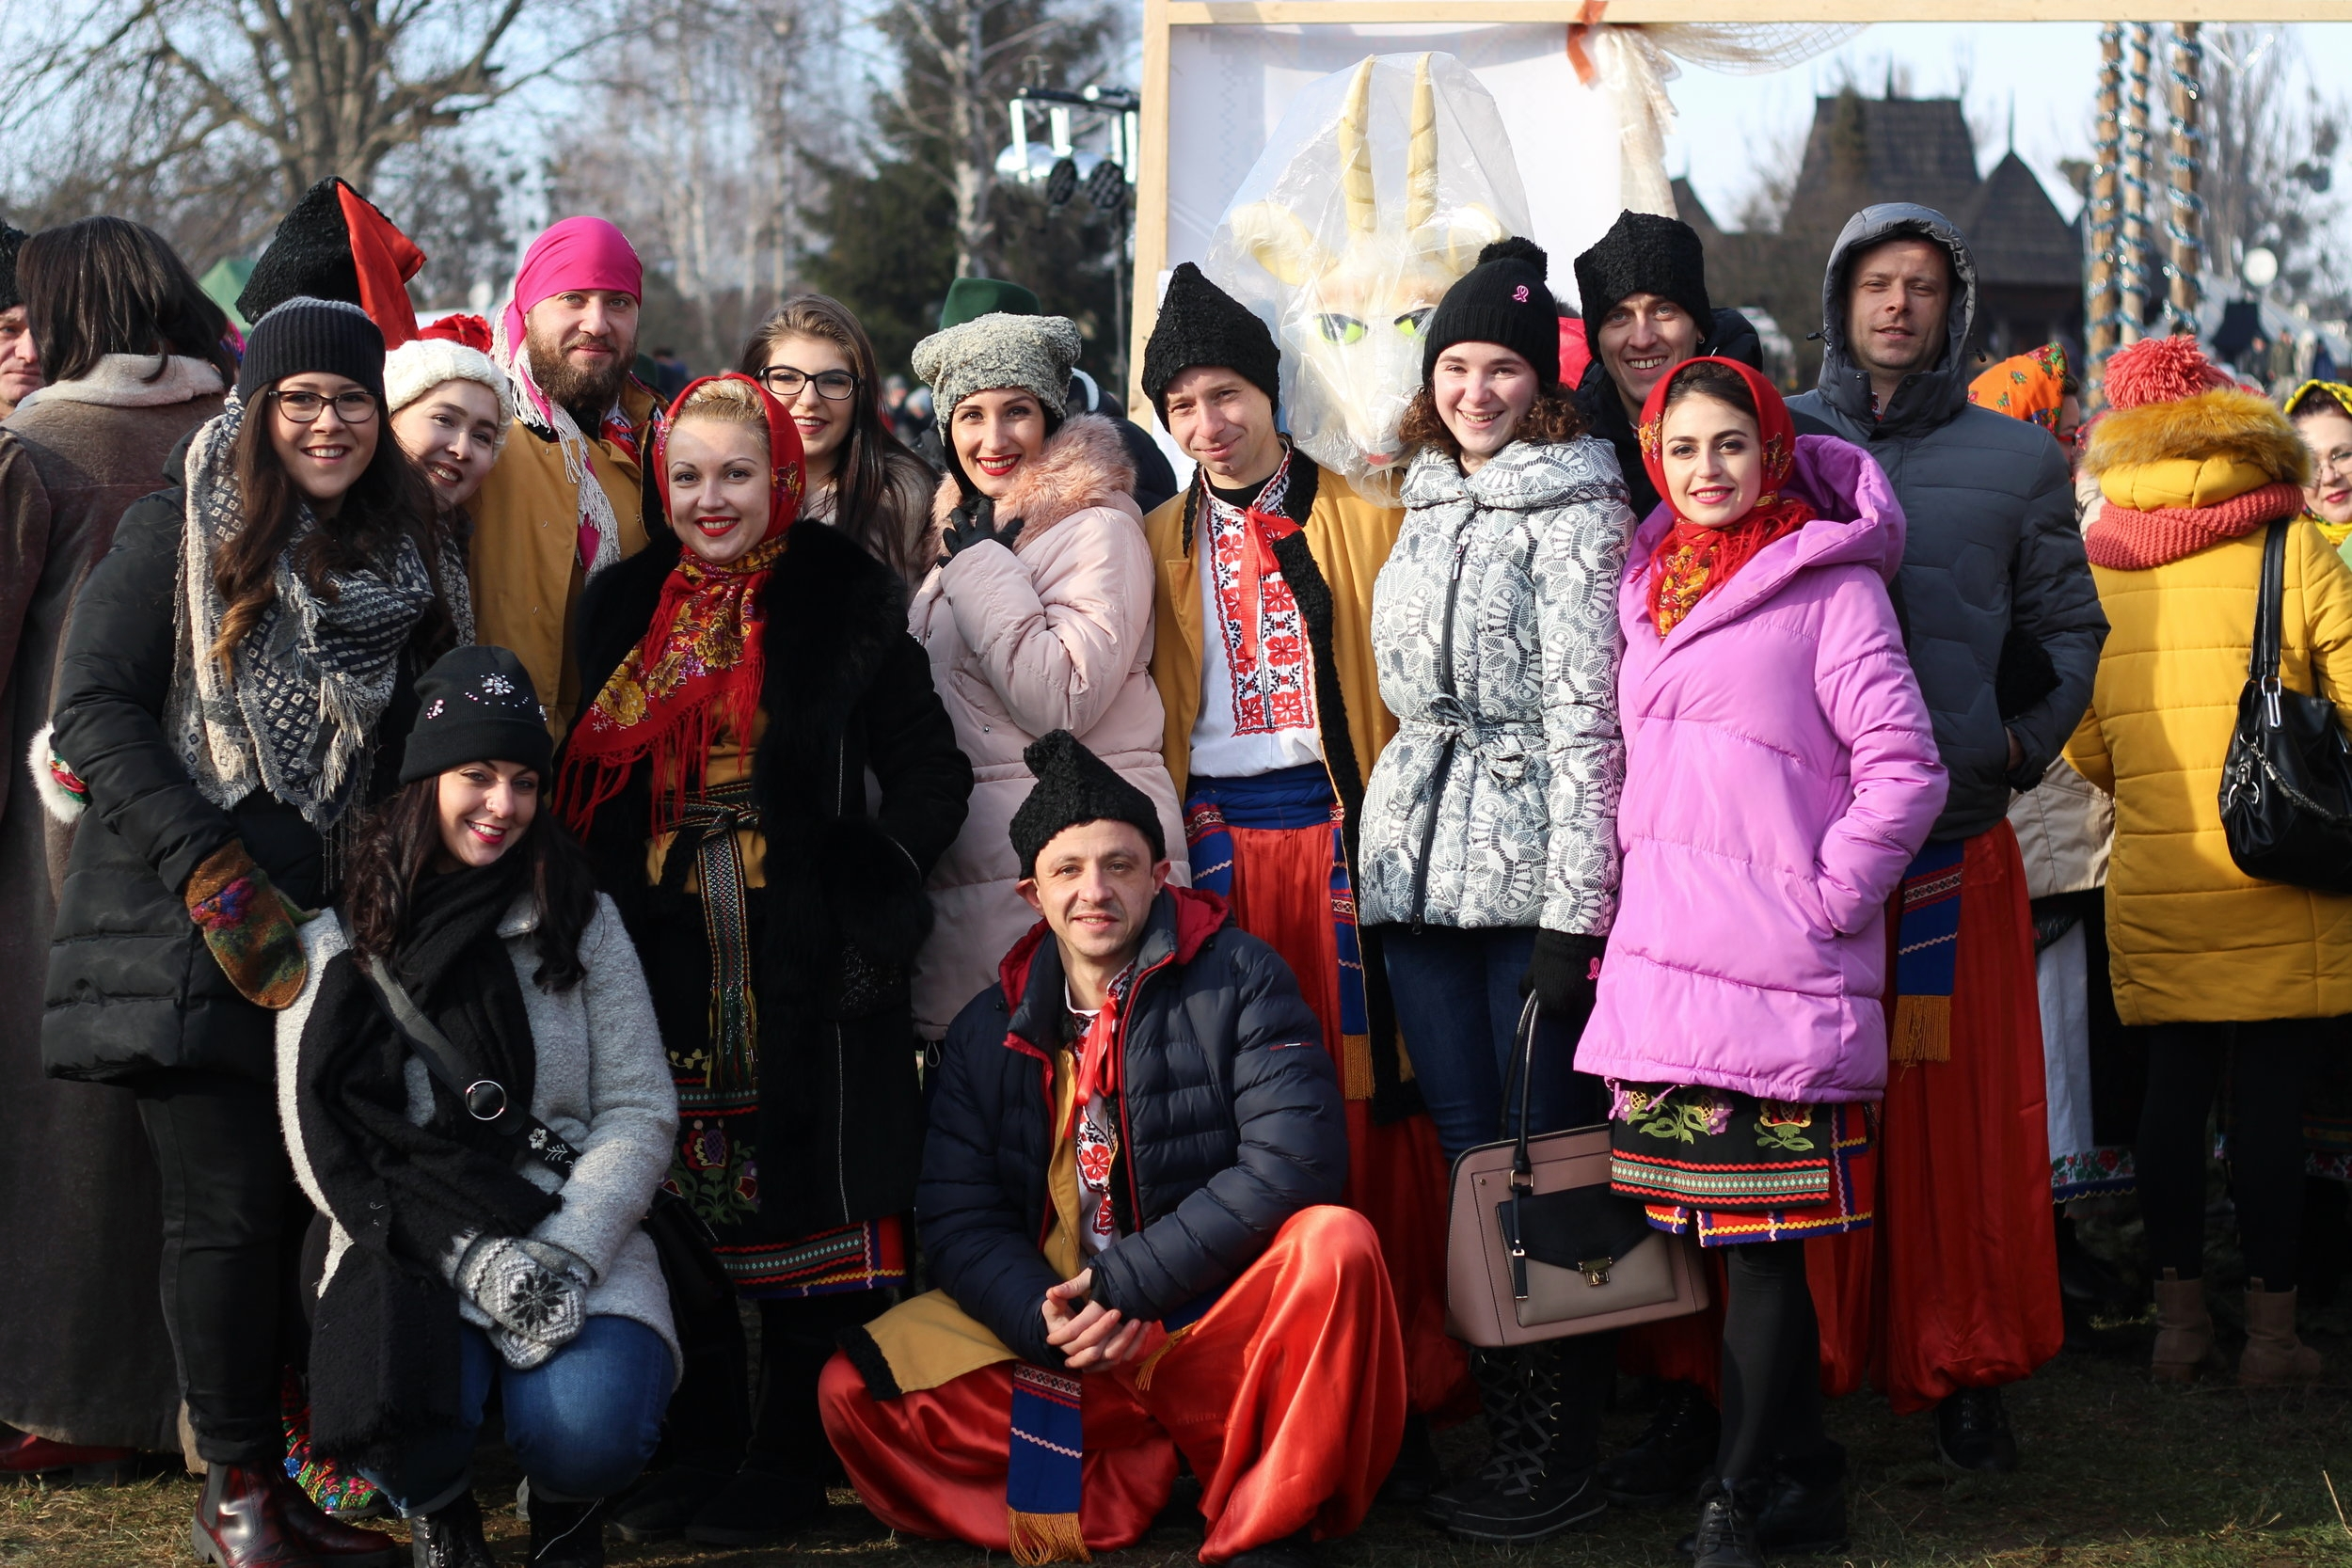 We watched the ensemble perform a holiday dance at the open air museum in Chernivtsi on Jan. 21.